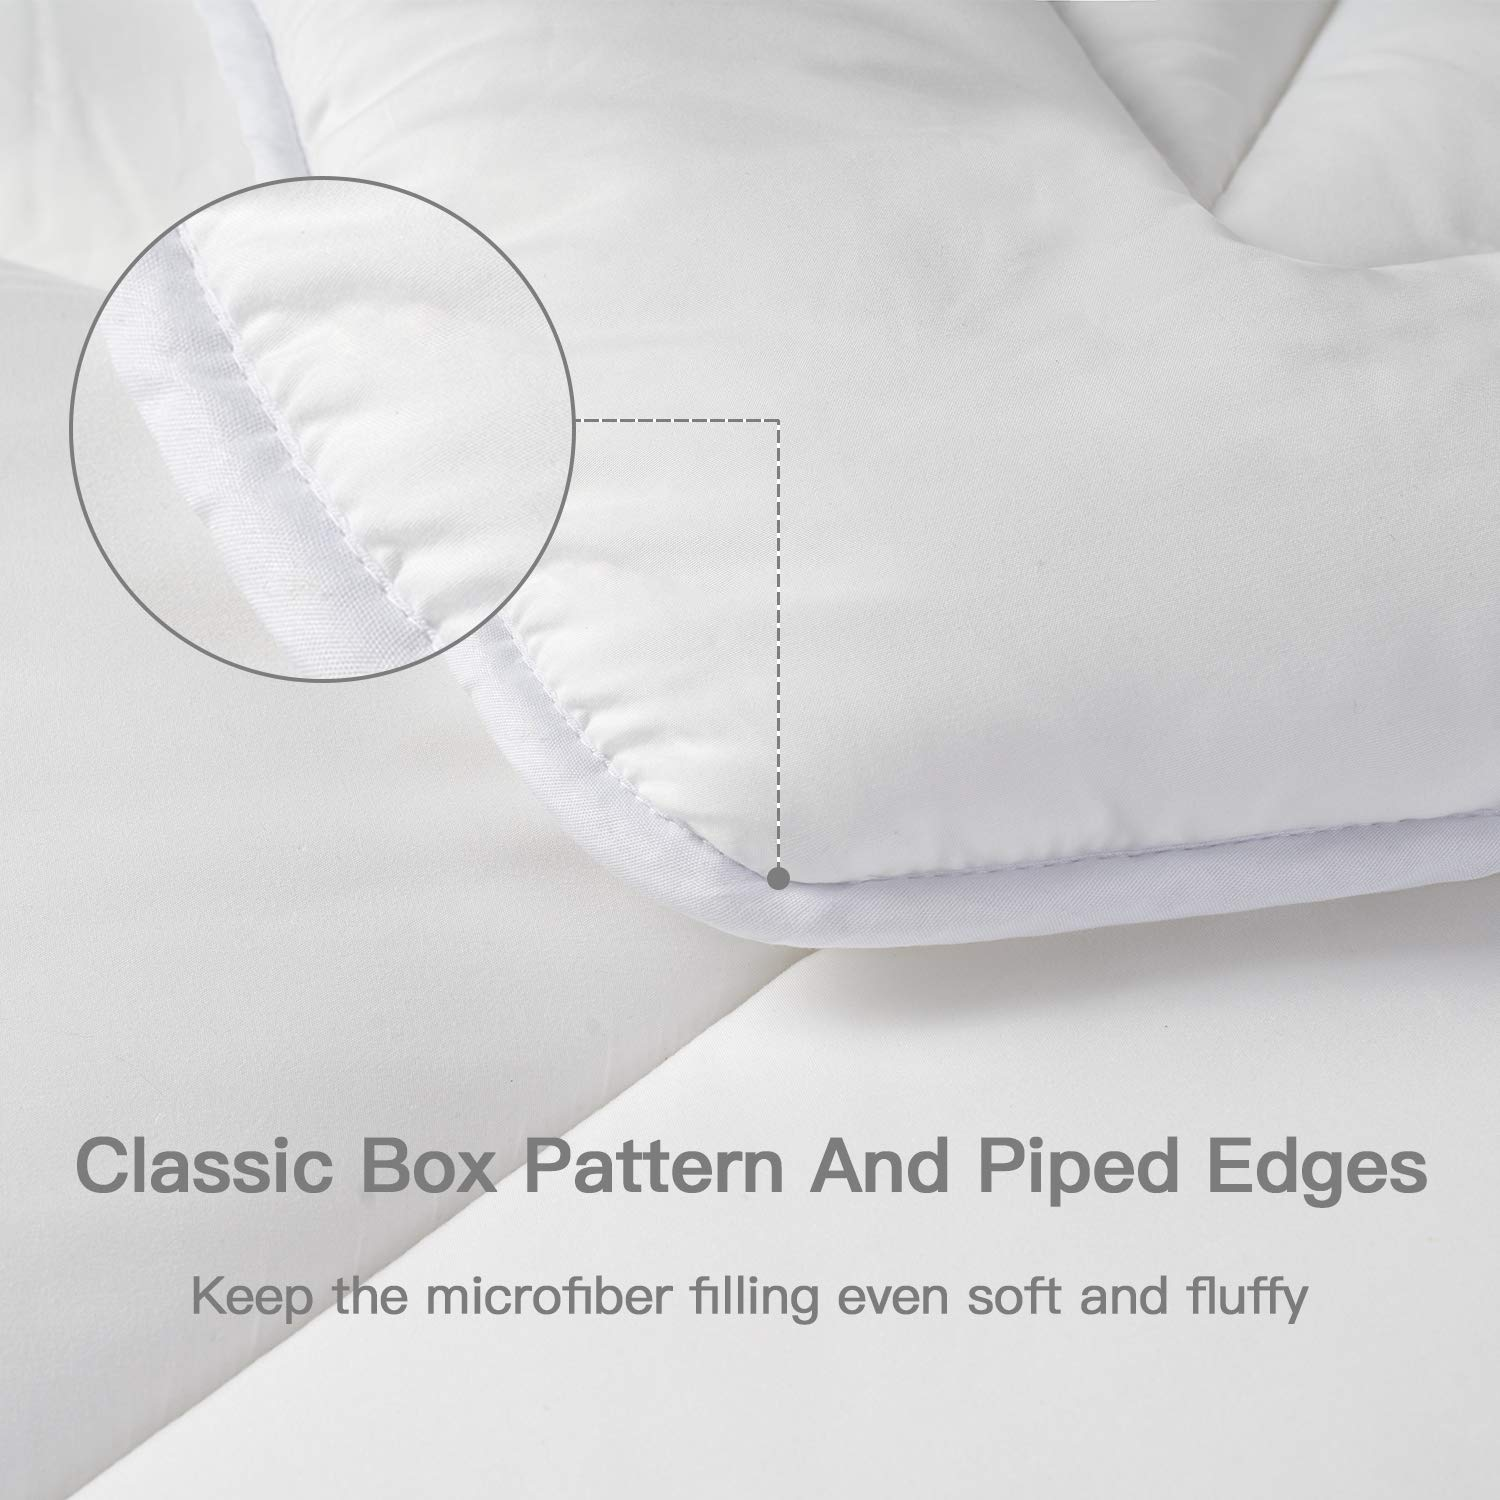 Twin 350 GSM OEKO-TEX Certified BedStory Bedding All Season Comforter - Warm Fluffy Box-Stitching Comforter for Twin Bed Hotel Down Alternative Quilted Comforter with Soft Plush Microfiber Fill